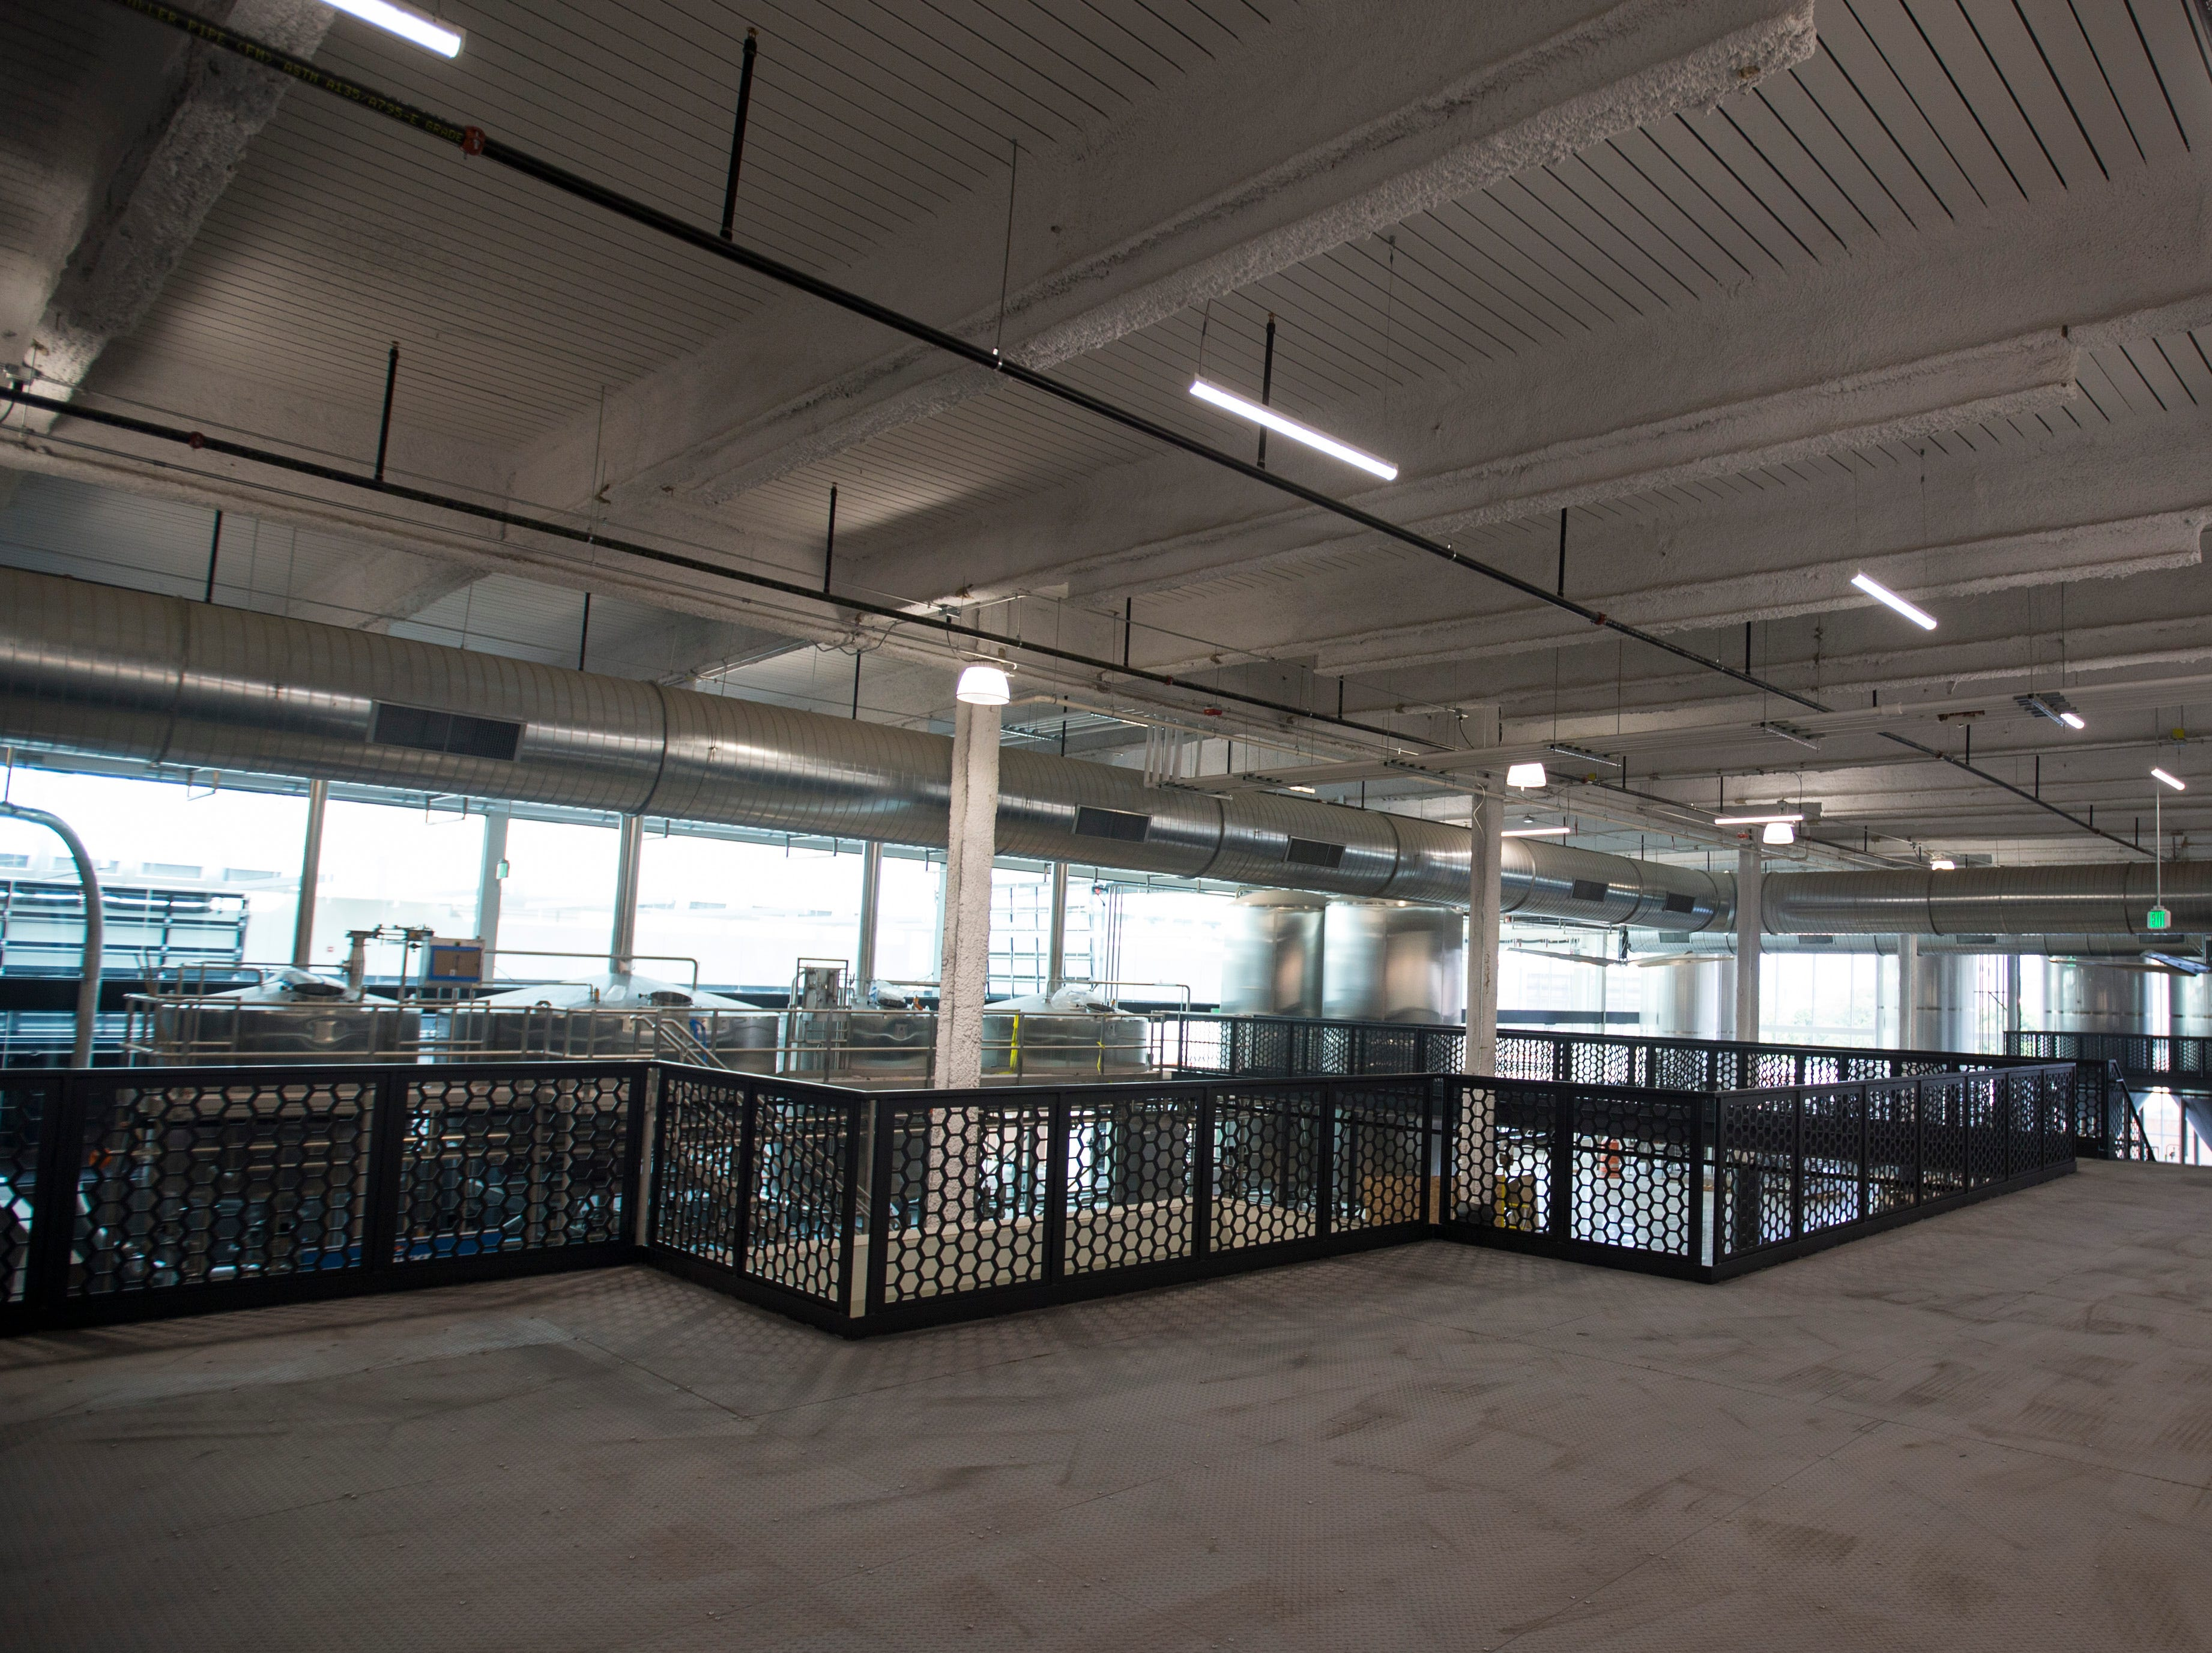 Tours at the new MKE Brewing will gather in open space but will take visitors close to the action, just as they do in the current 2nd street location.  The gathering area gives beer lovers a look at the entire process from brewing to packaging.